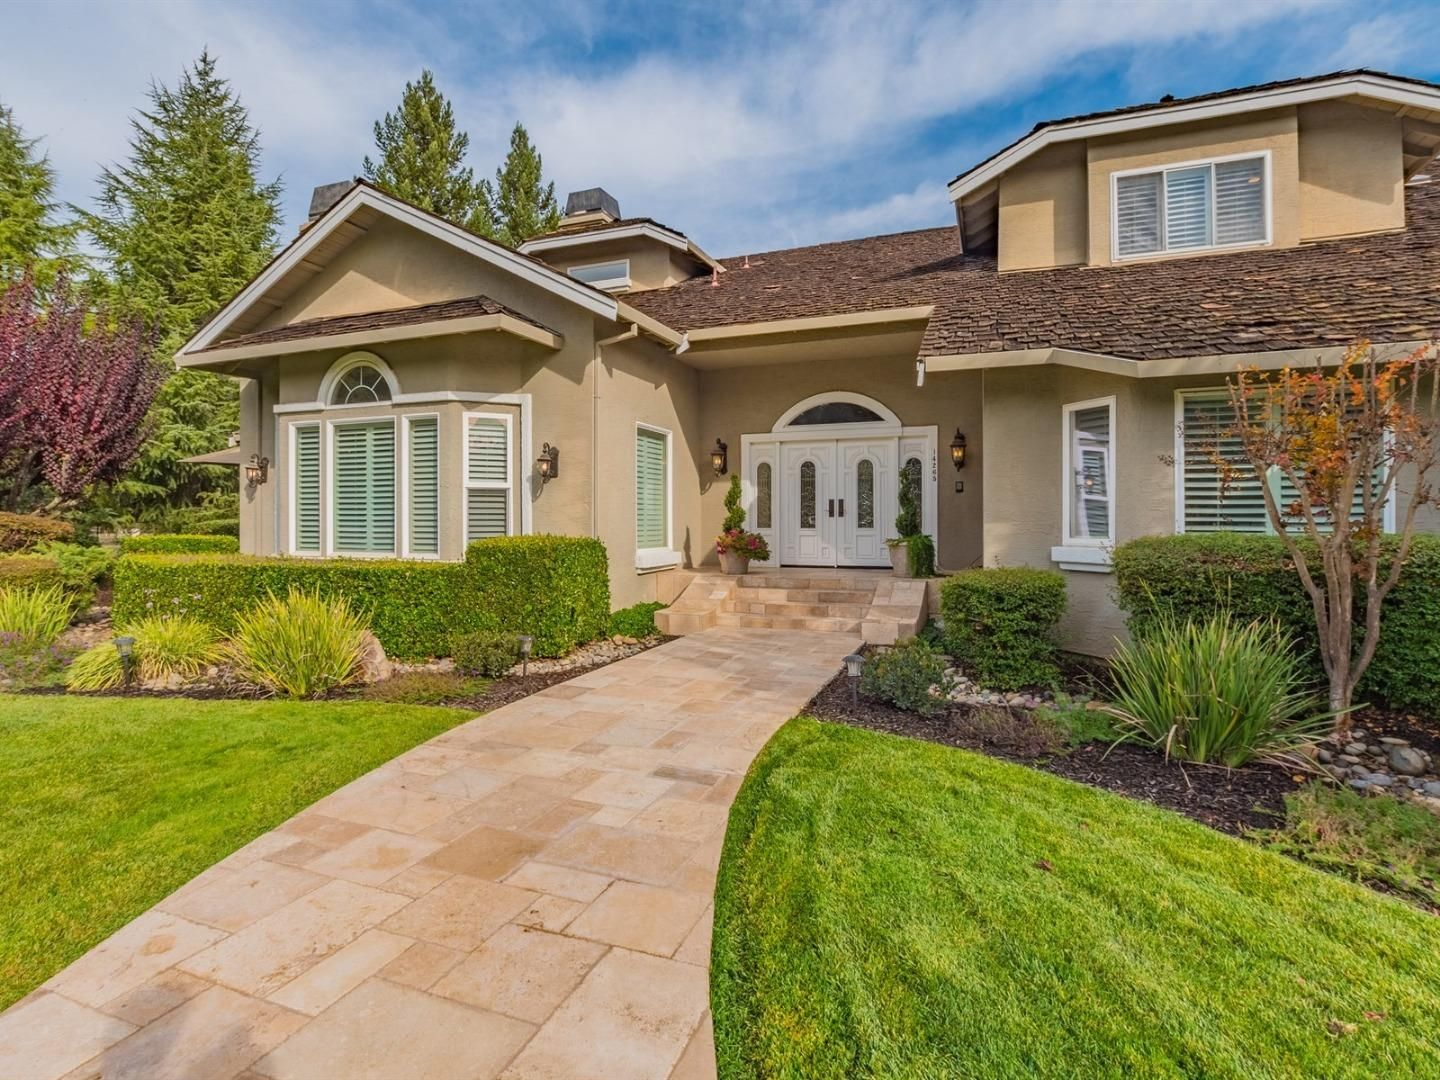 14265 Bowden CT, HILL, CA 95037 House styles